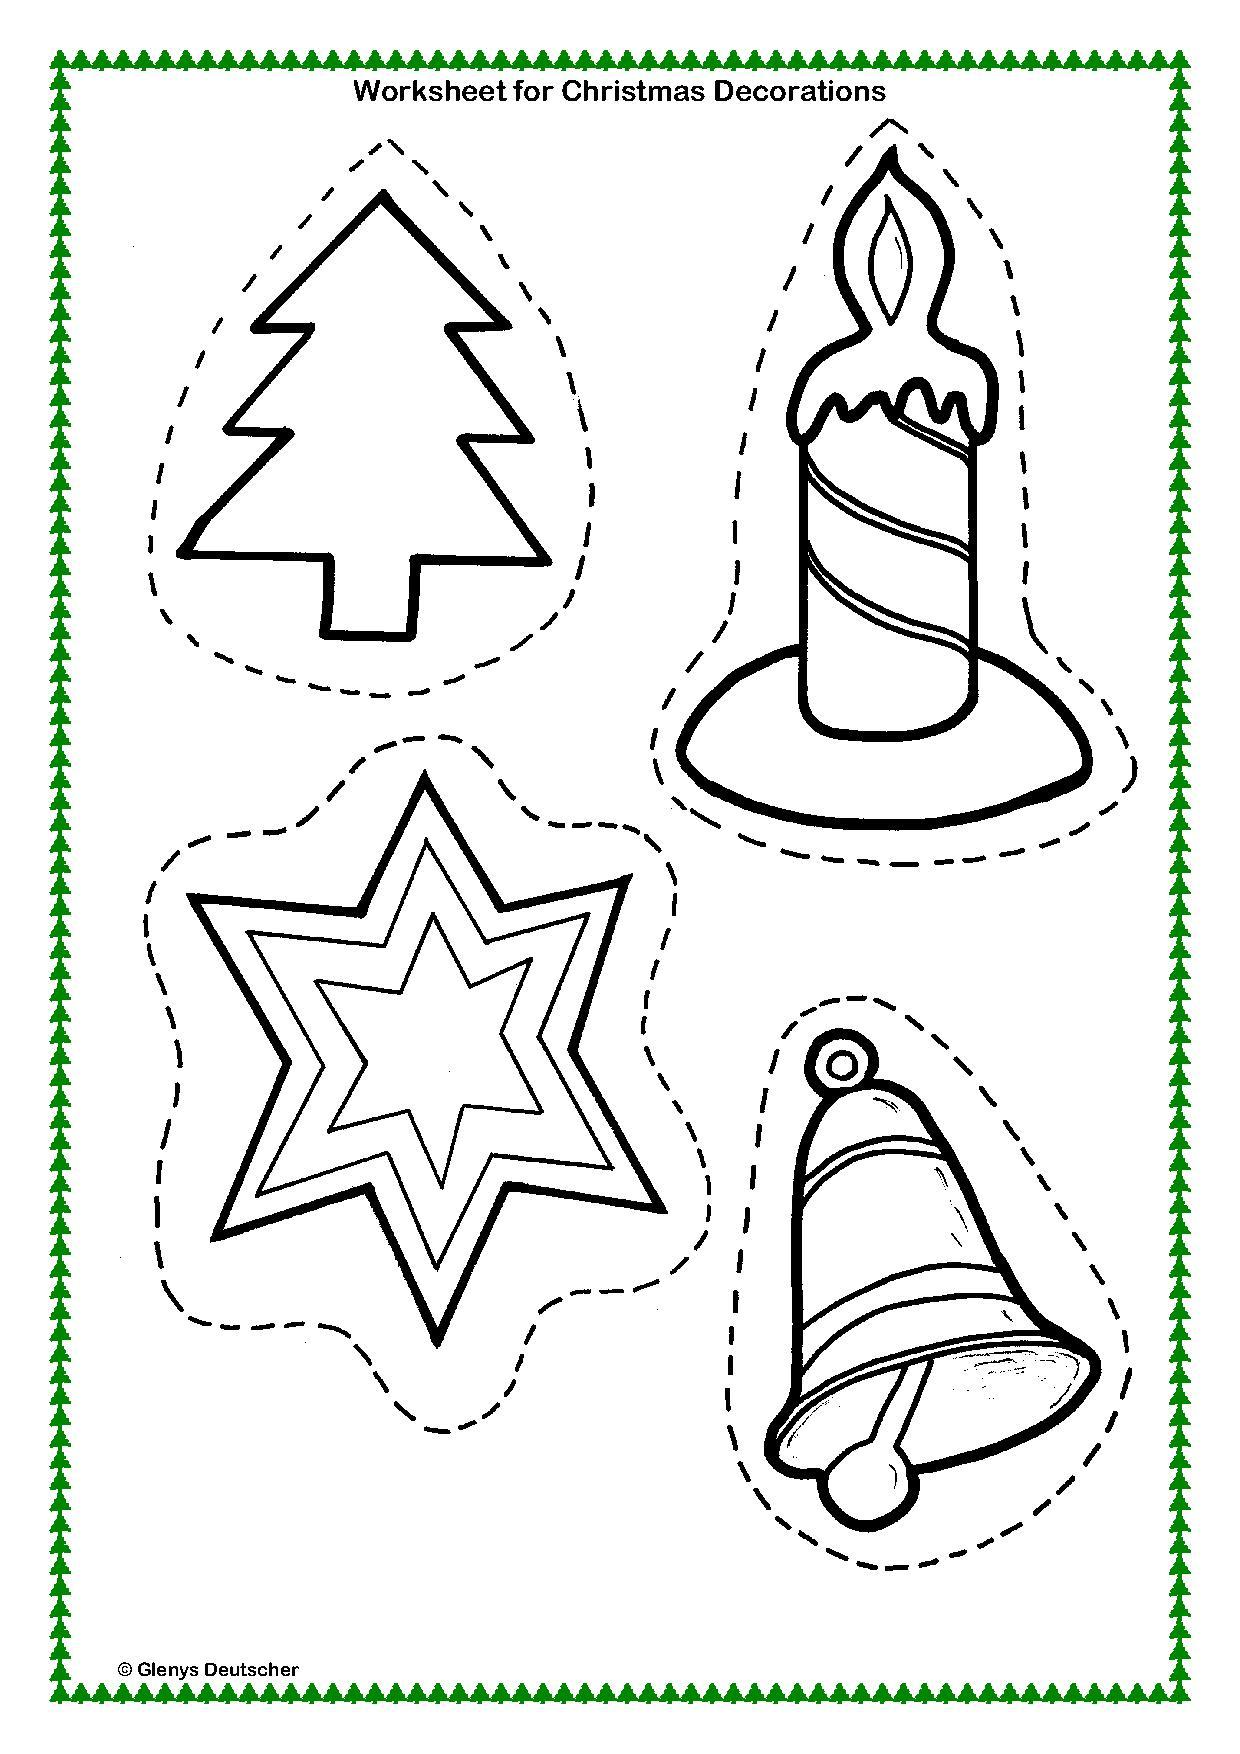 Free Printable Arts And Crafts Worksheets